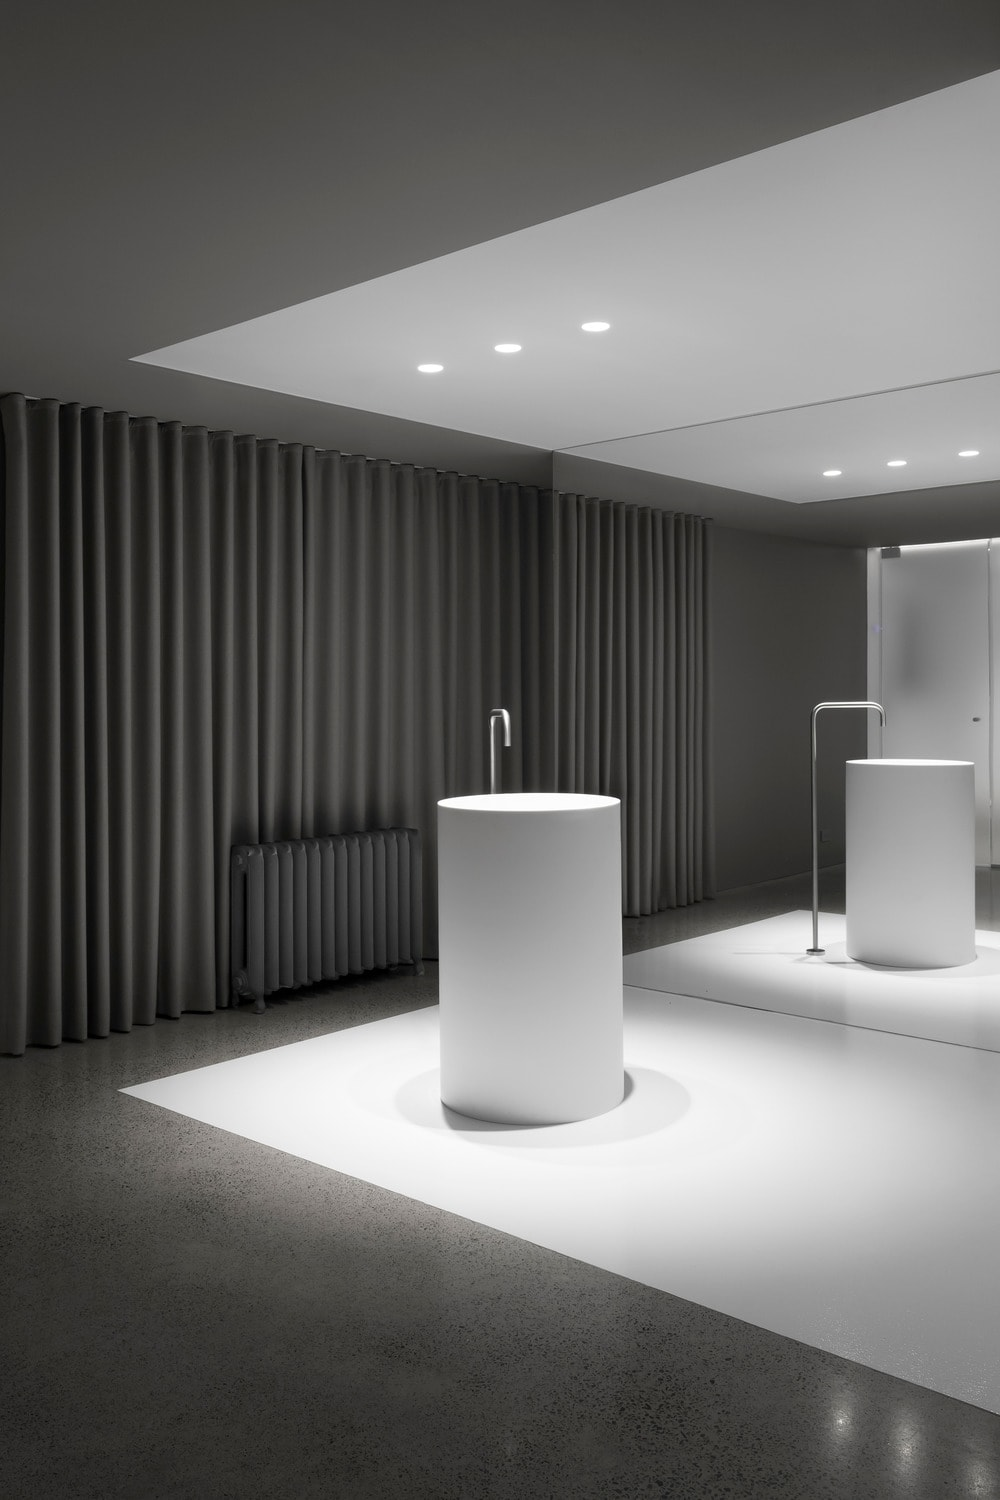 This angled view of the powder room shows the pedestal sink standing in the middle of the white floor bordered with dark tiles and dark gray curtains.